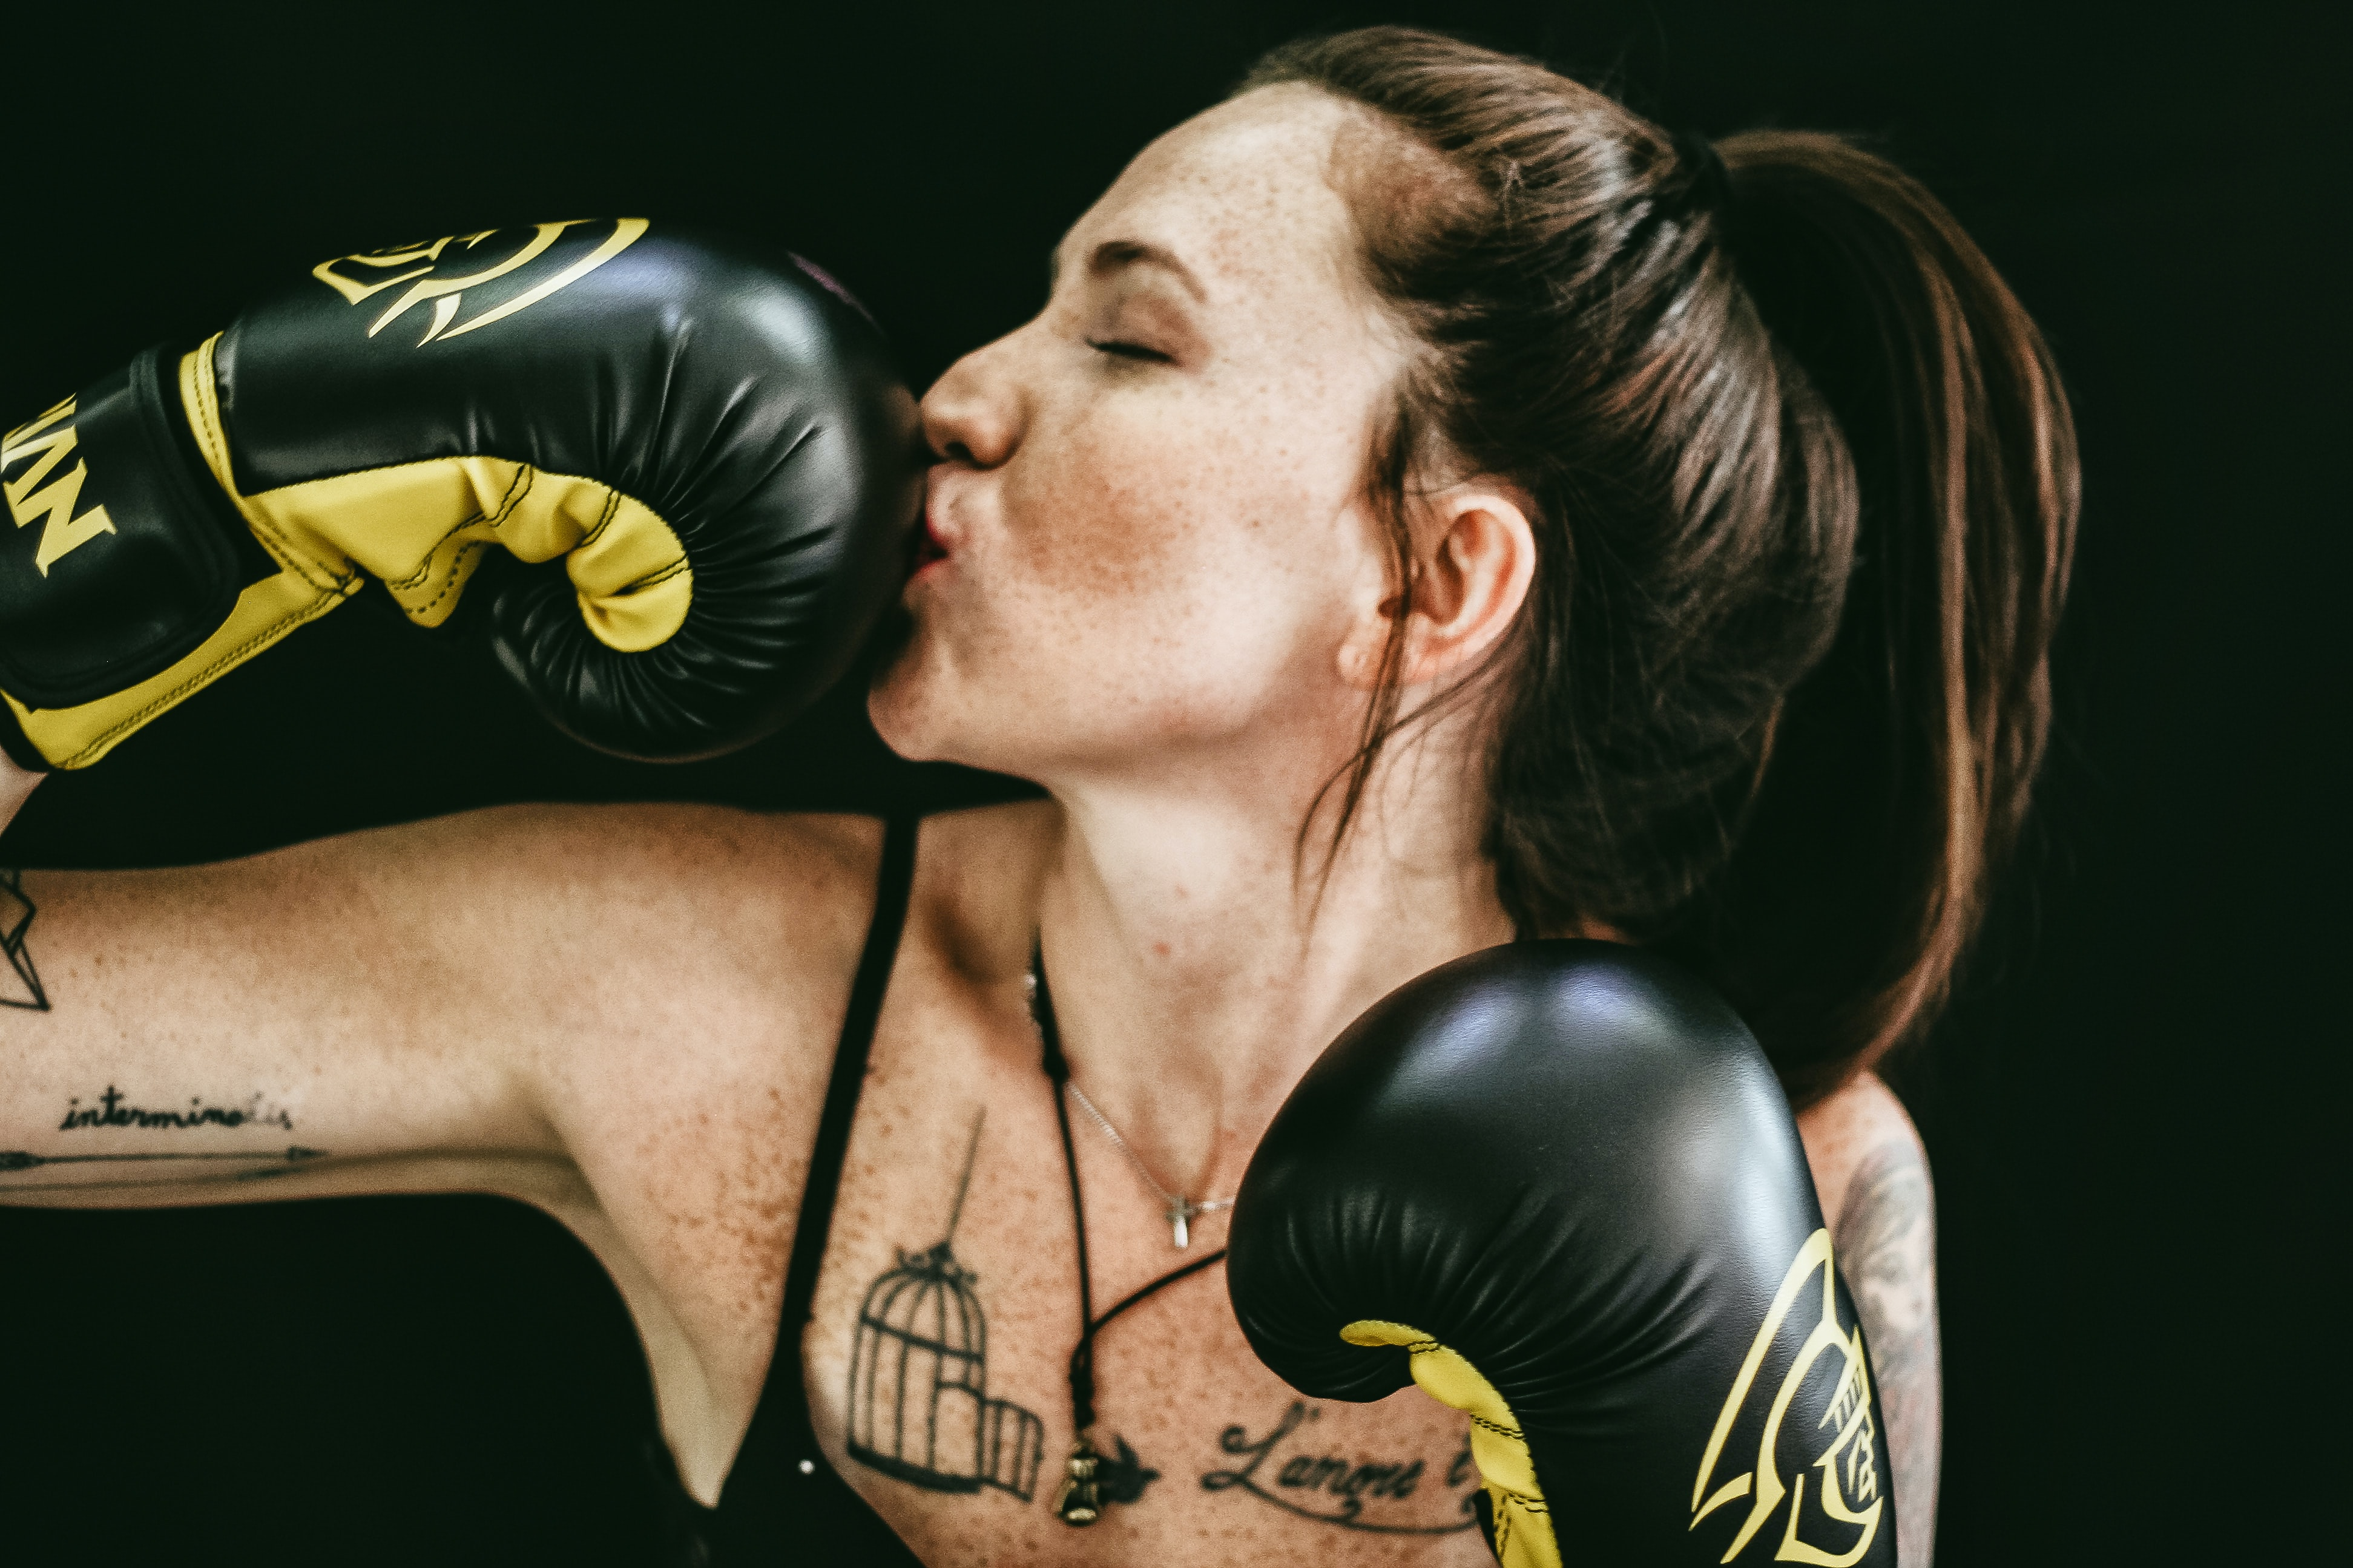 A young woman in black boxing gloves kissing one of her gloves